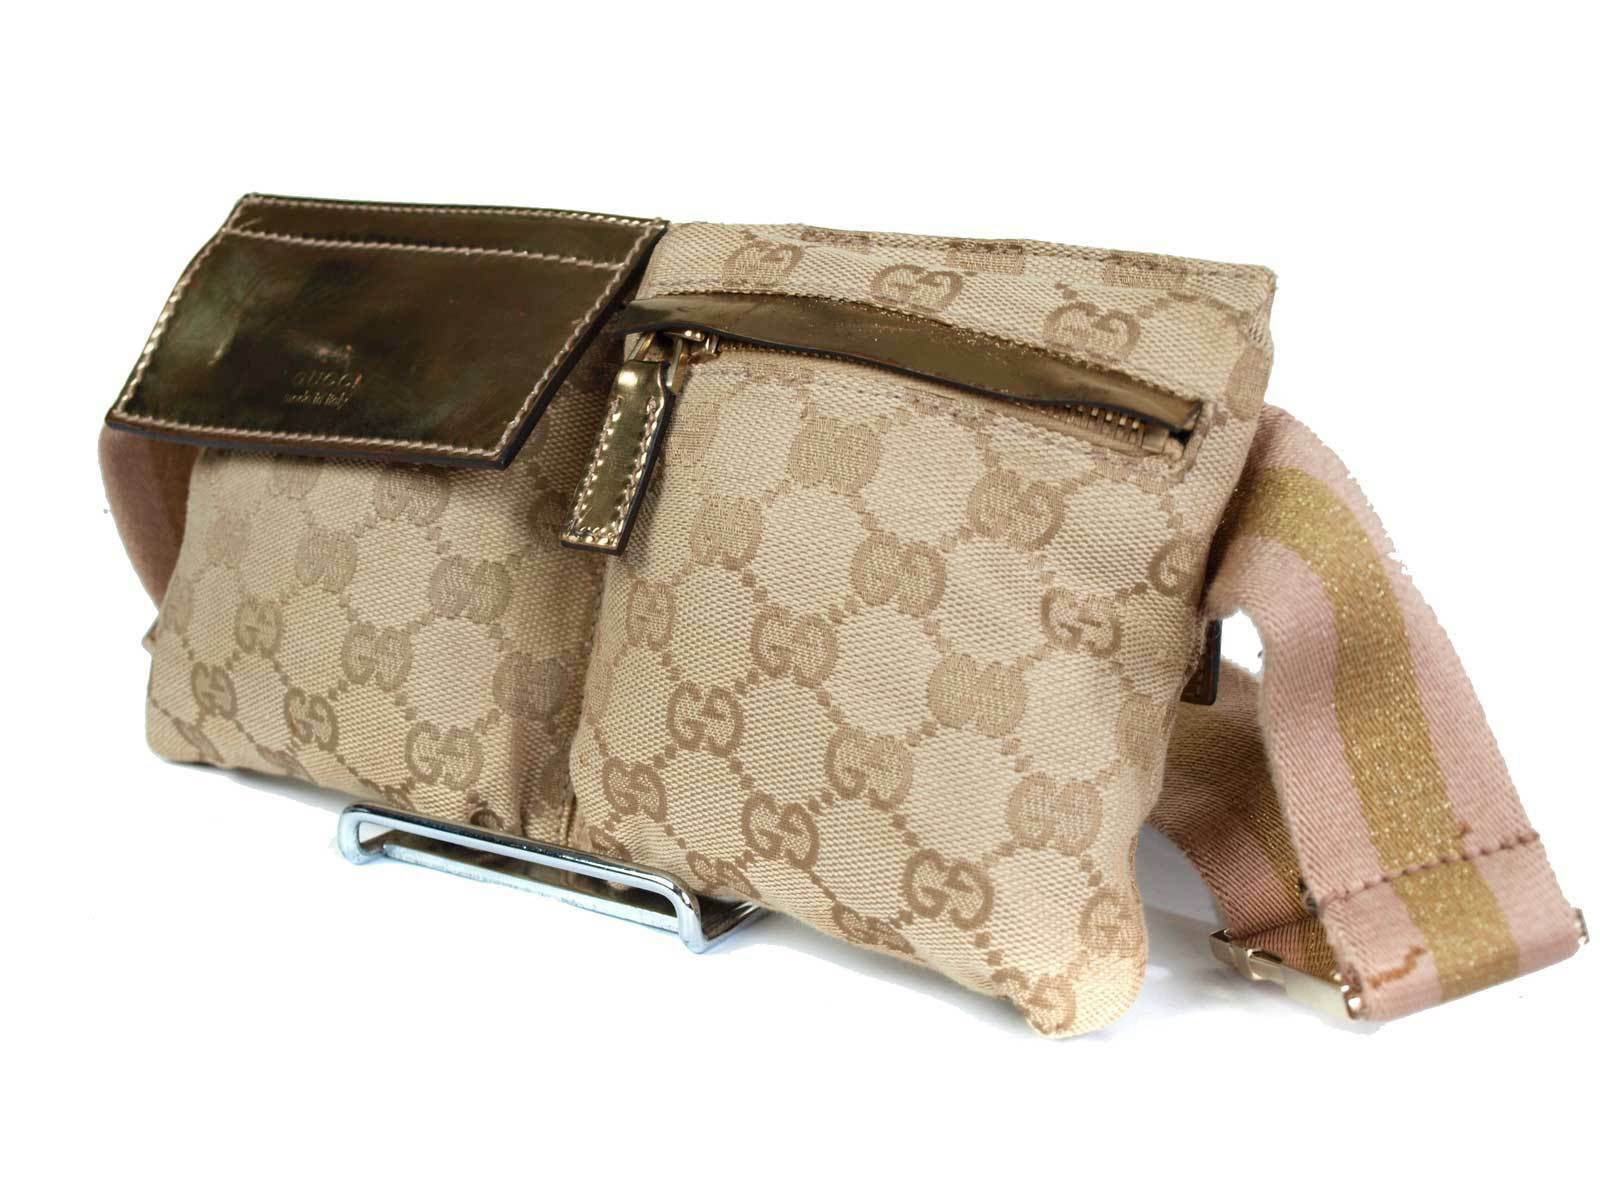 5a14afea1 Authentic Gucci GG Pattern Canvas Leather Browns Waist Belt Bag GW1808 -  $349.00